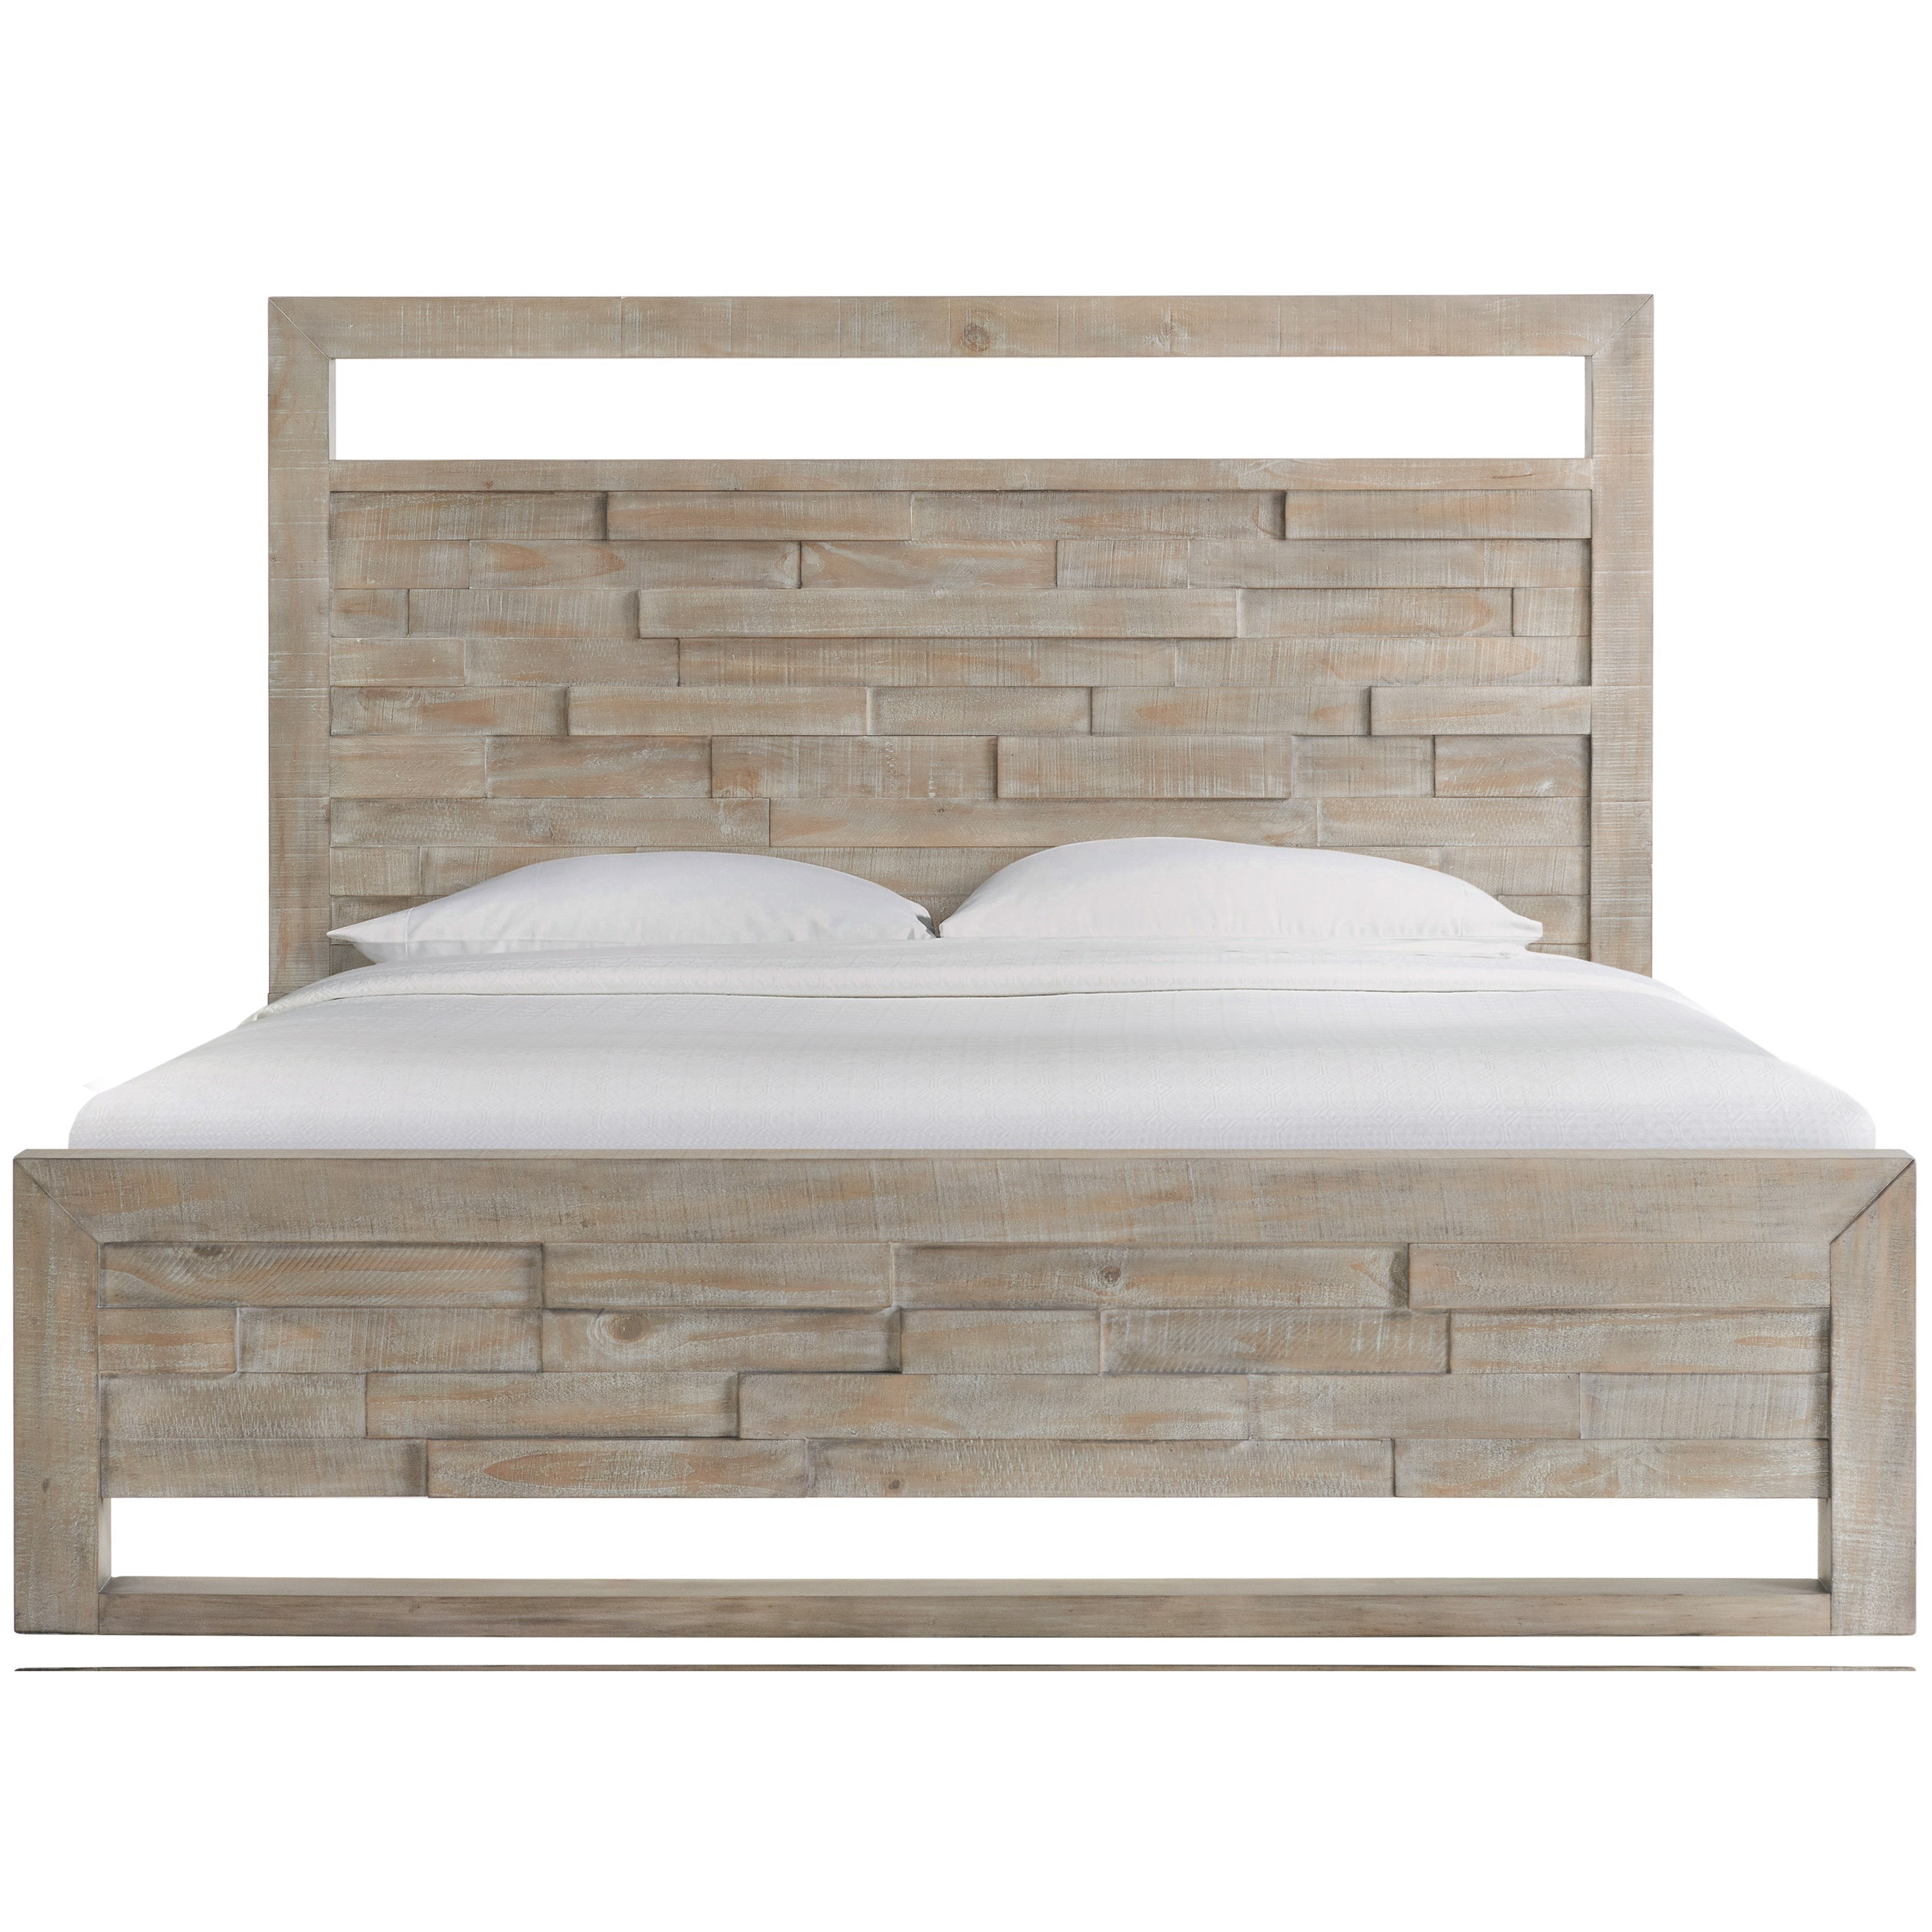 Intrigue King Low Profile Bed by Riverside Furniture at Mueller Furniture